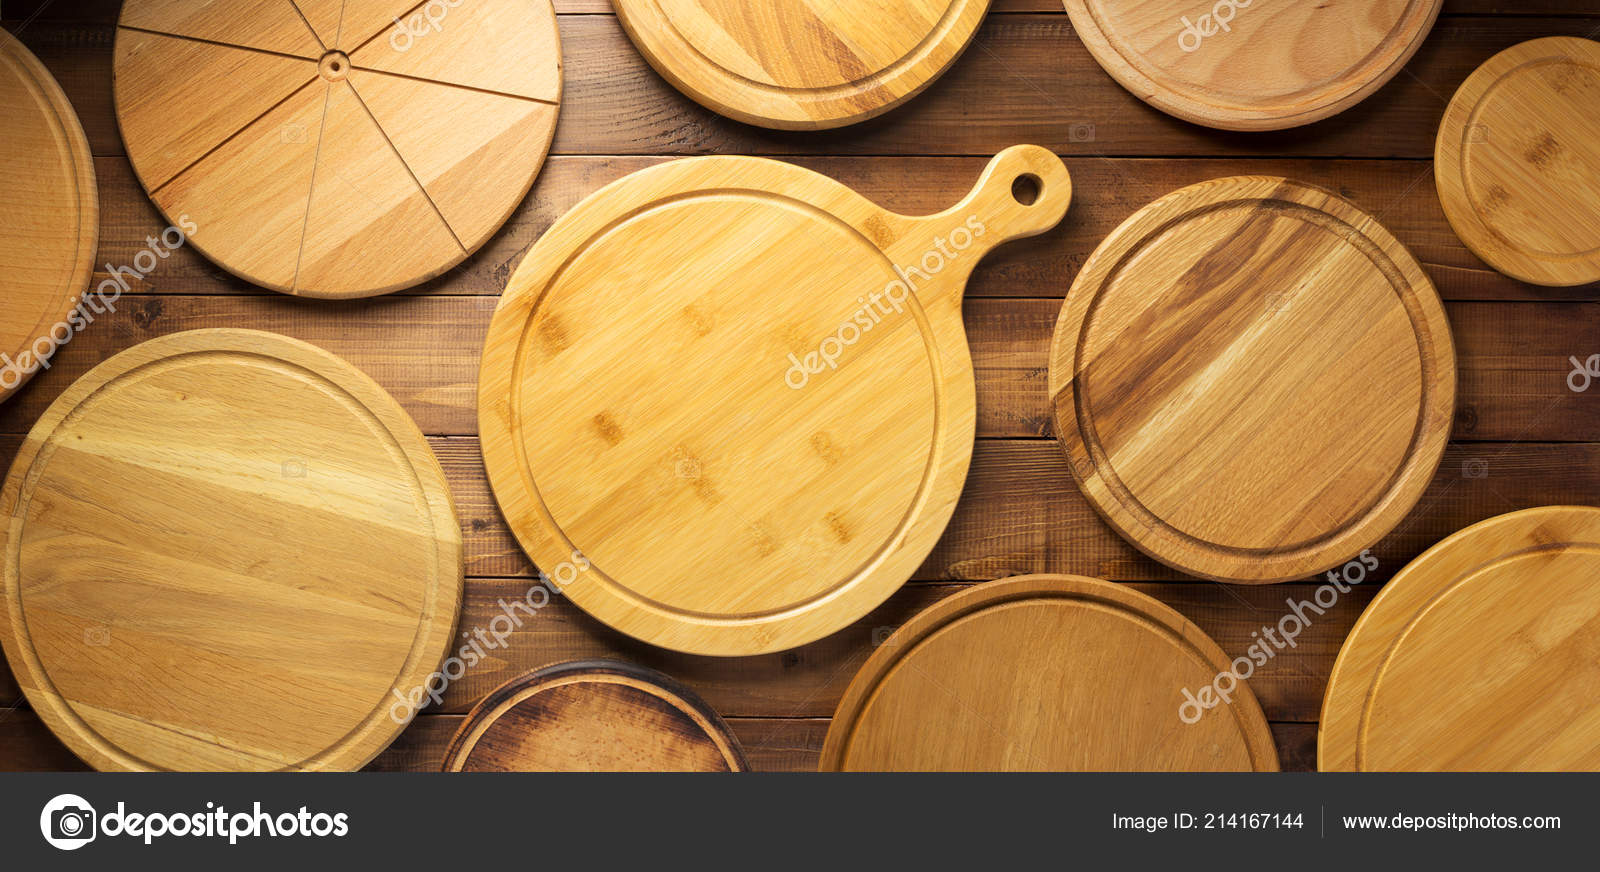 Pizza Bread Cutting Board Wooden Table Top View — Stock